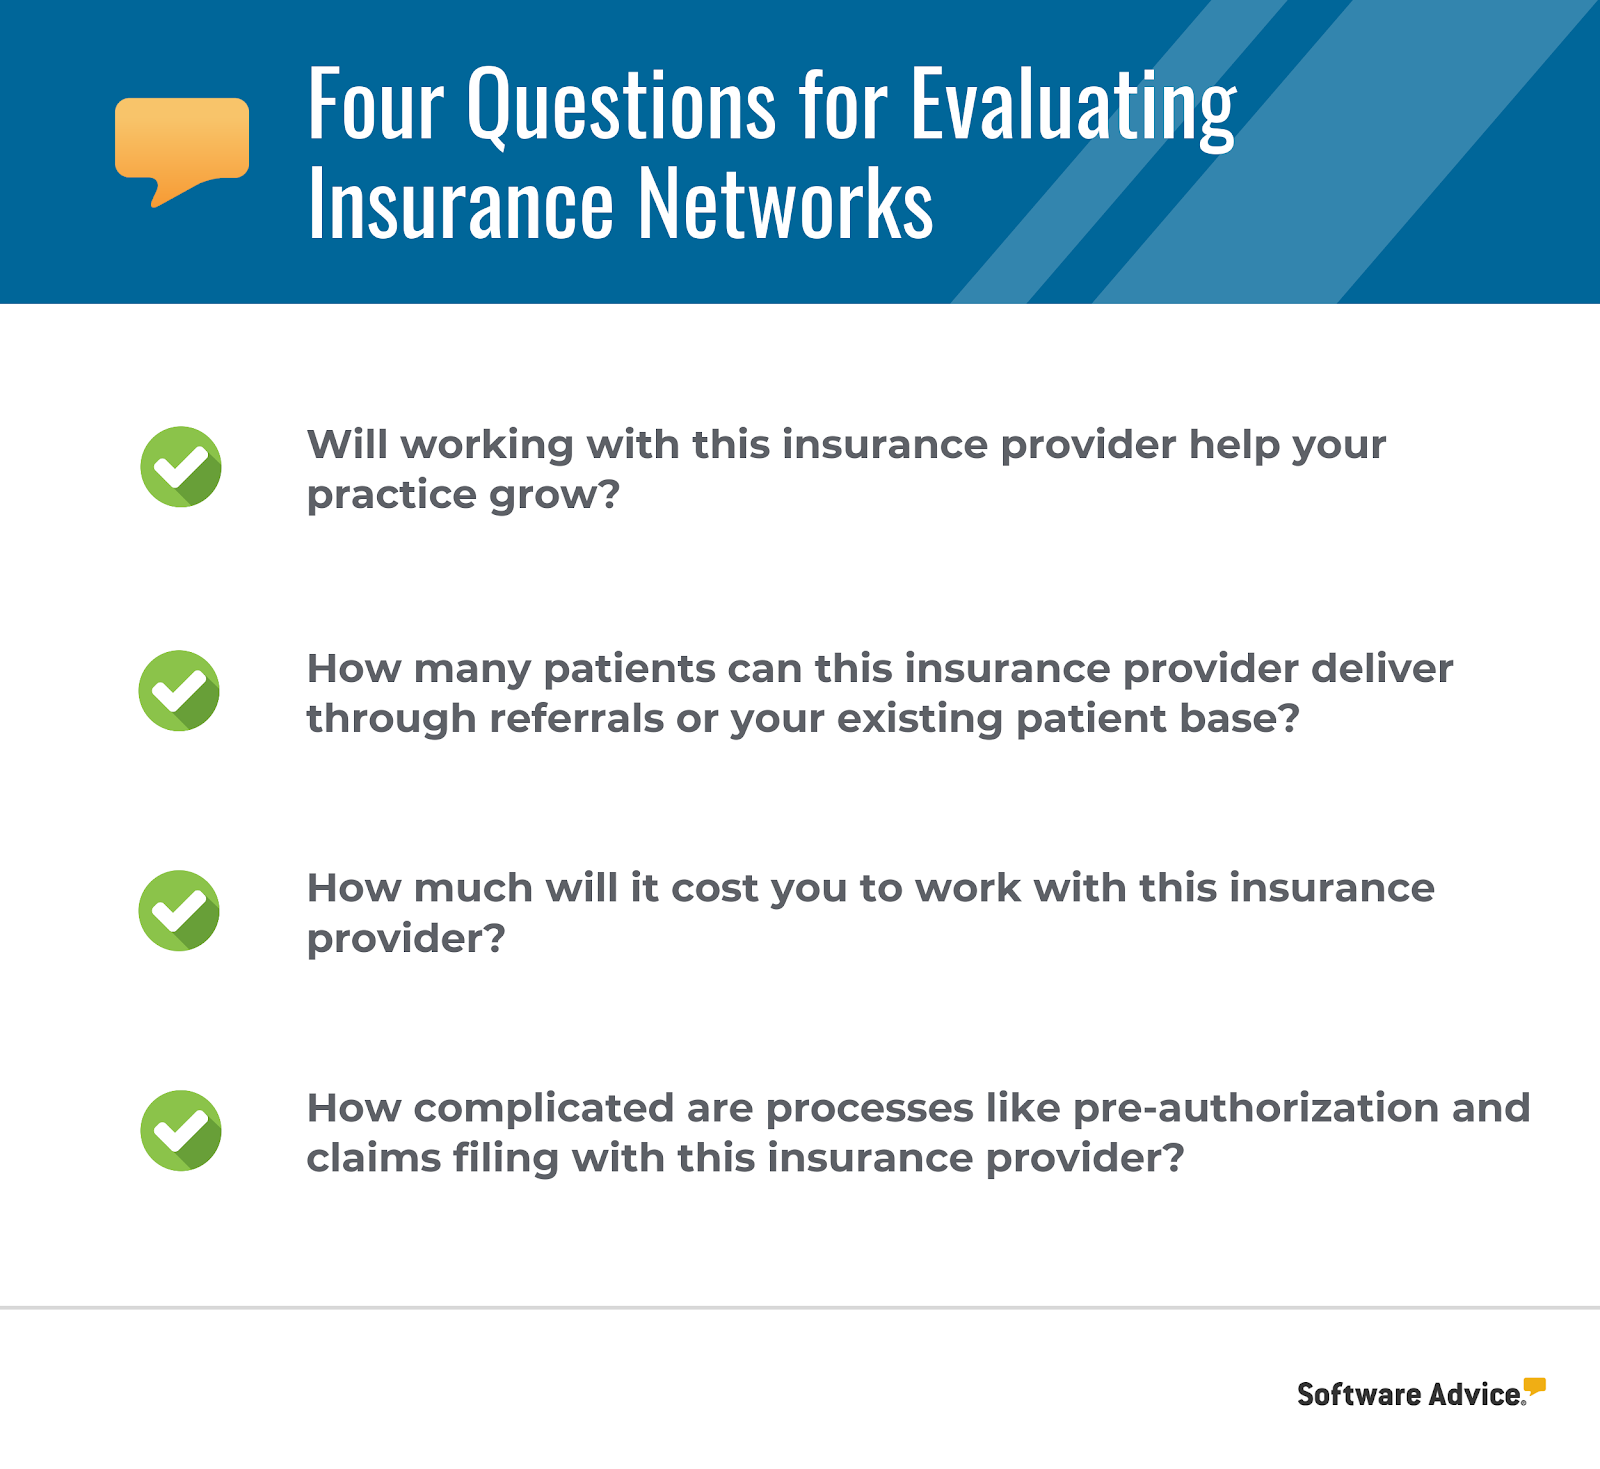 evaluating insurance networks